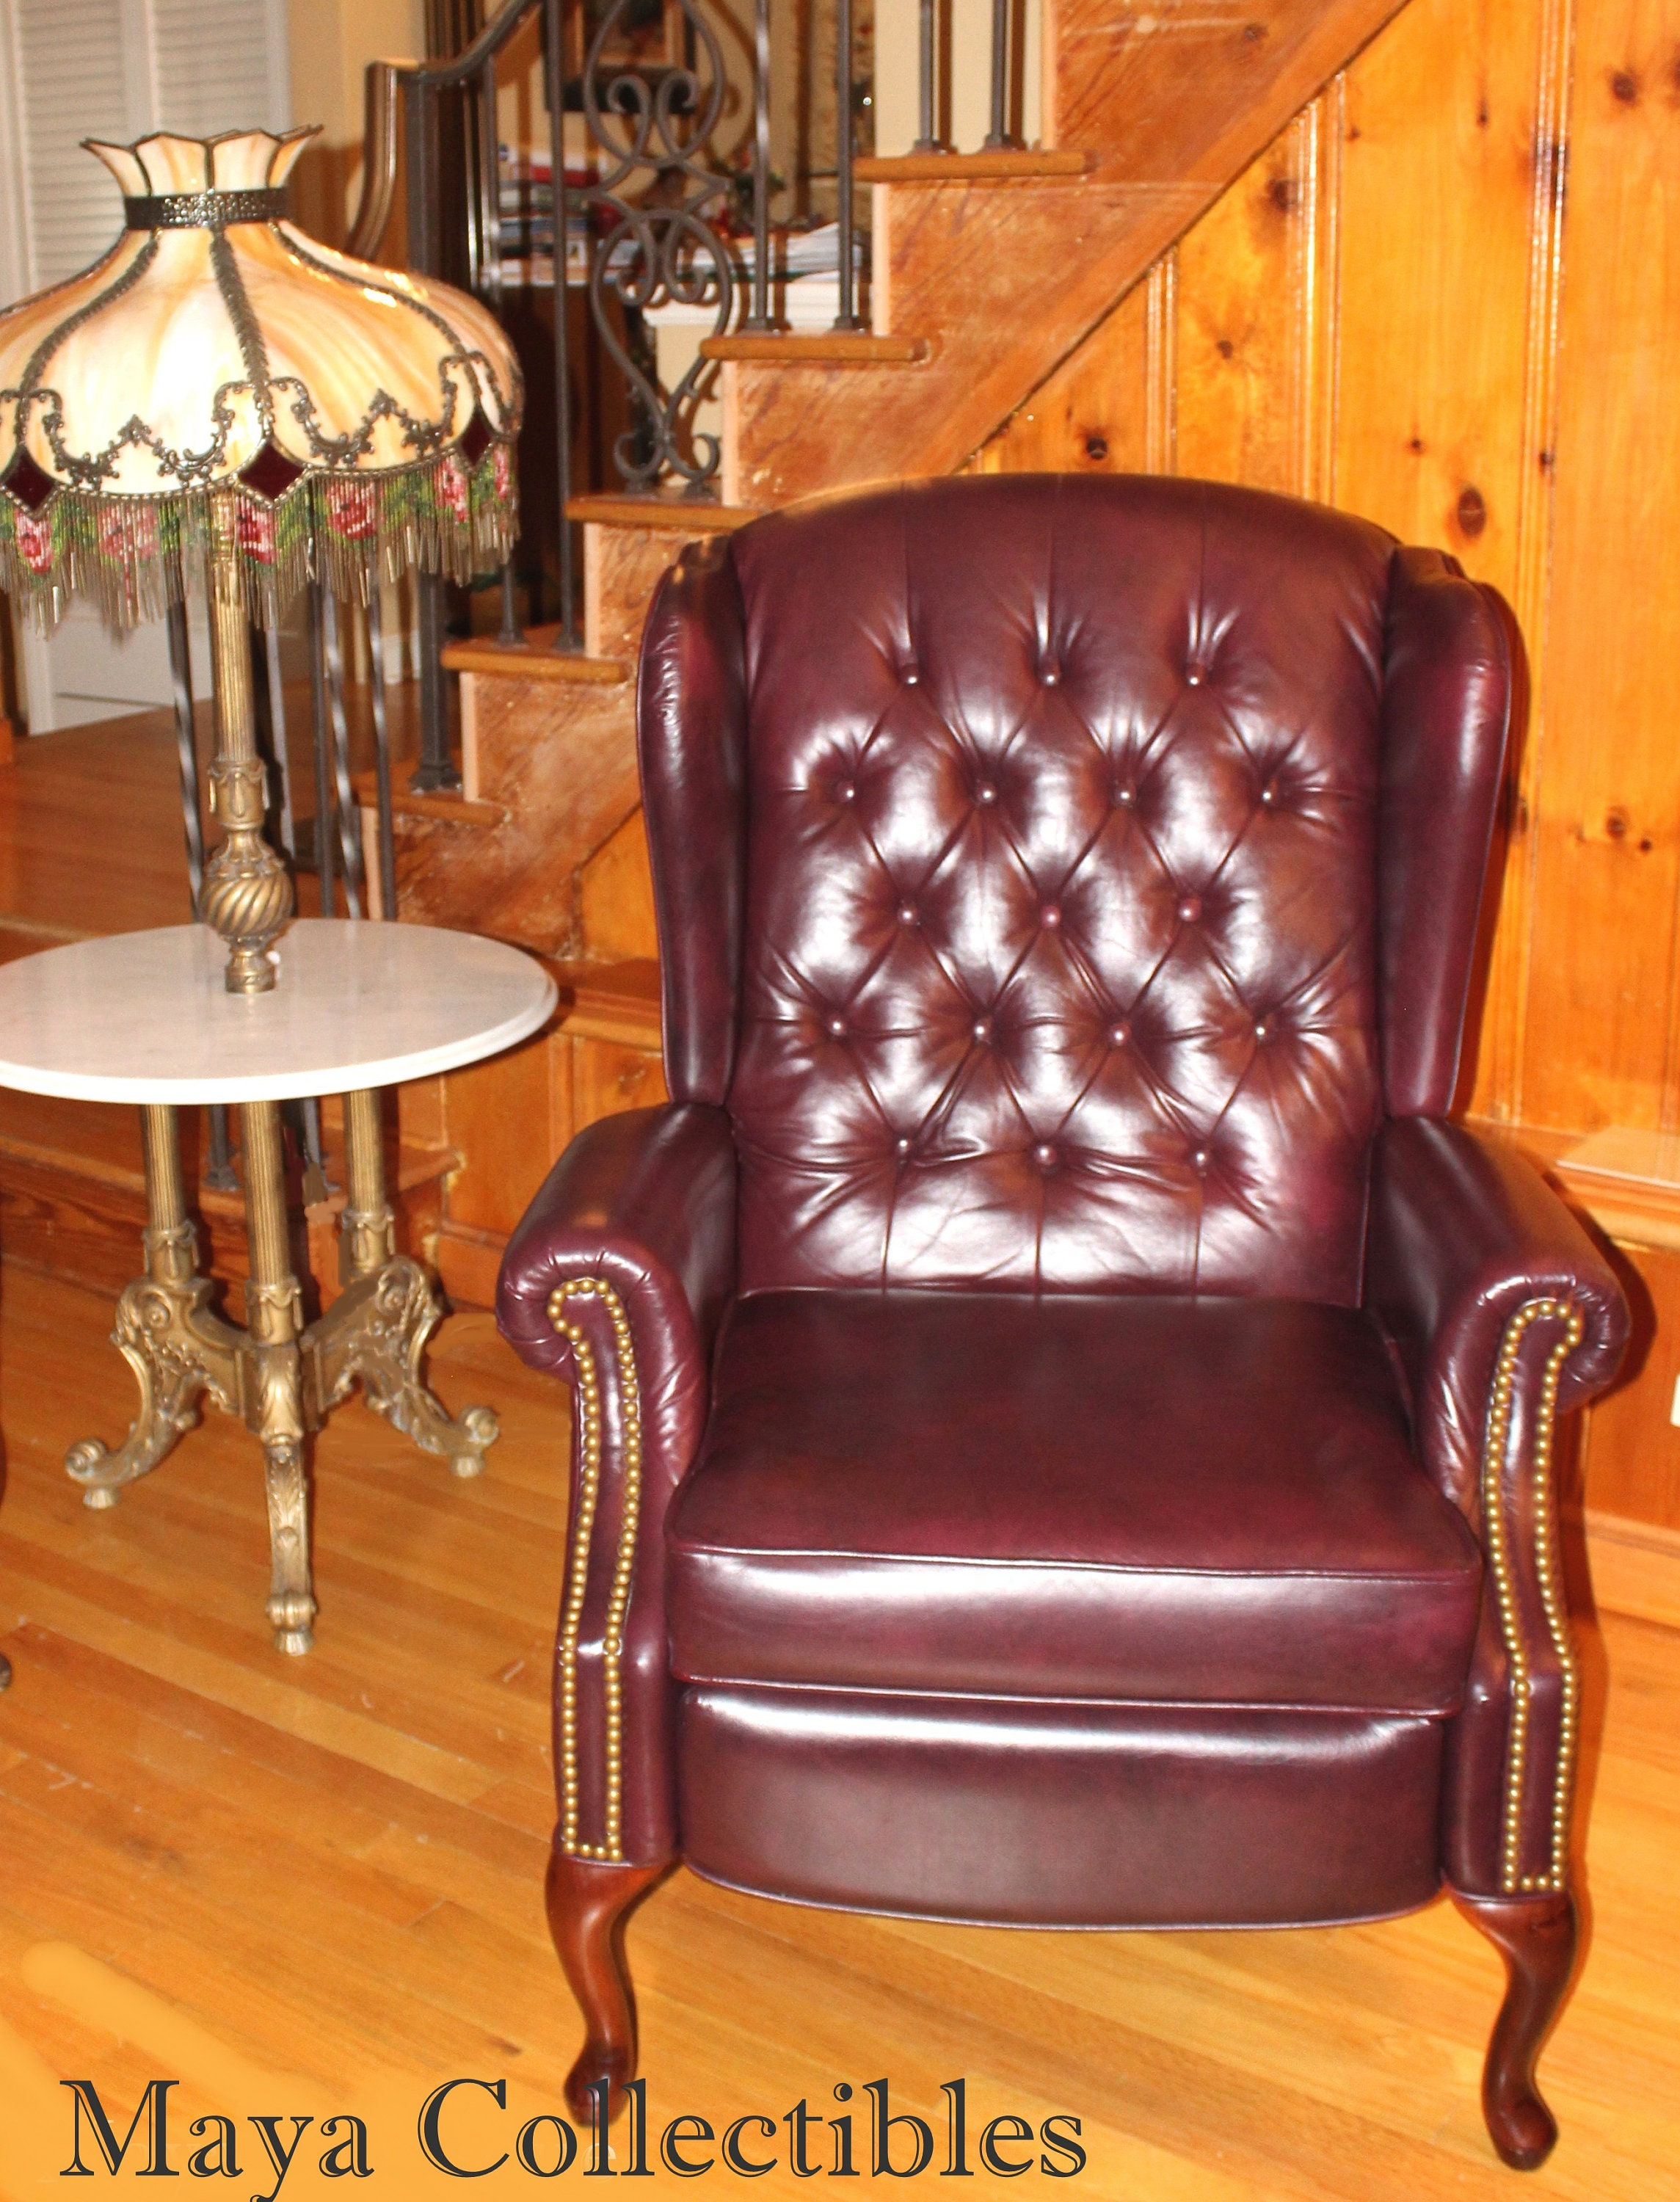 Sensational Lane Queen Anne Wingback Recliner Chair Tufted Leather Pdpeps Interior Chair Design Pdpepsorg